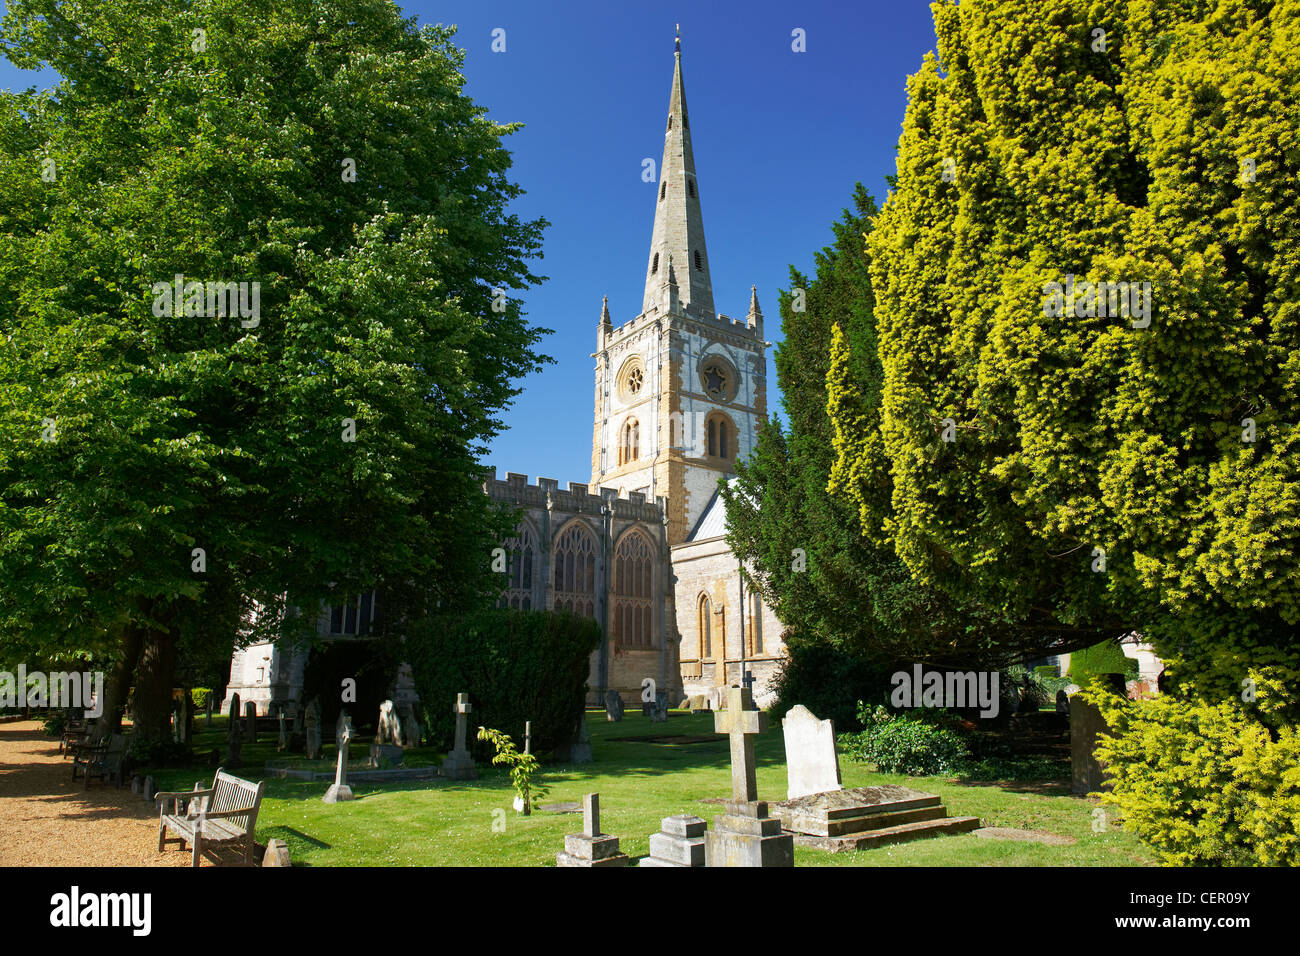 The Collegiate Church of the Holy and Undivided Trinity and cemetery. William Shakespeare was baptised in the church - Stock Image